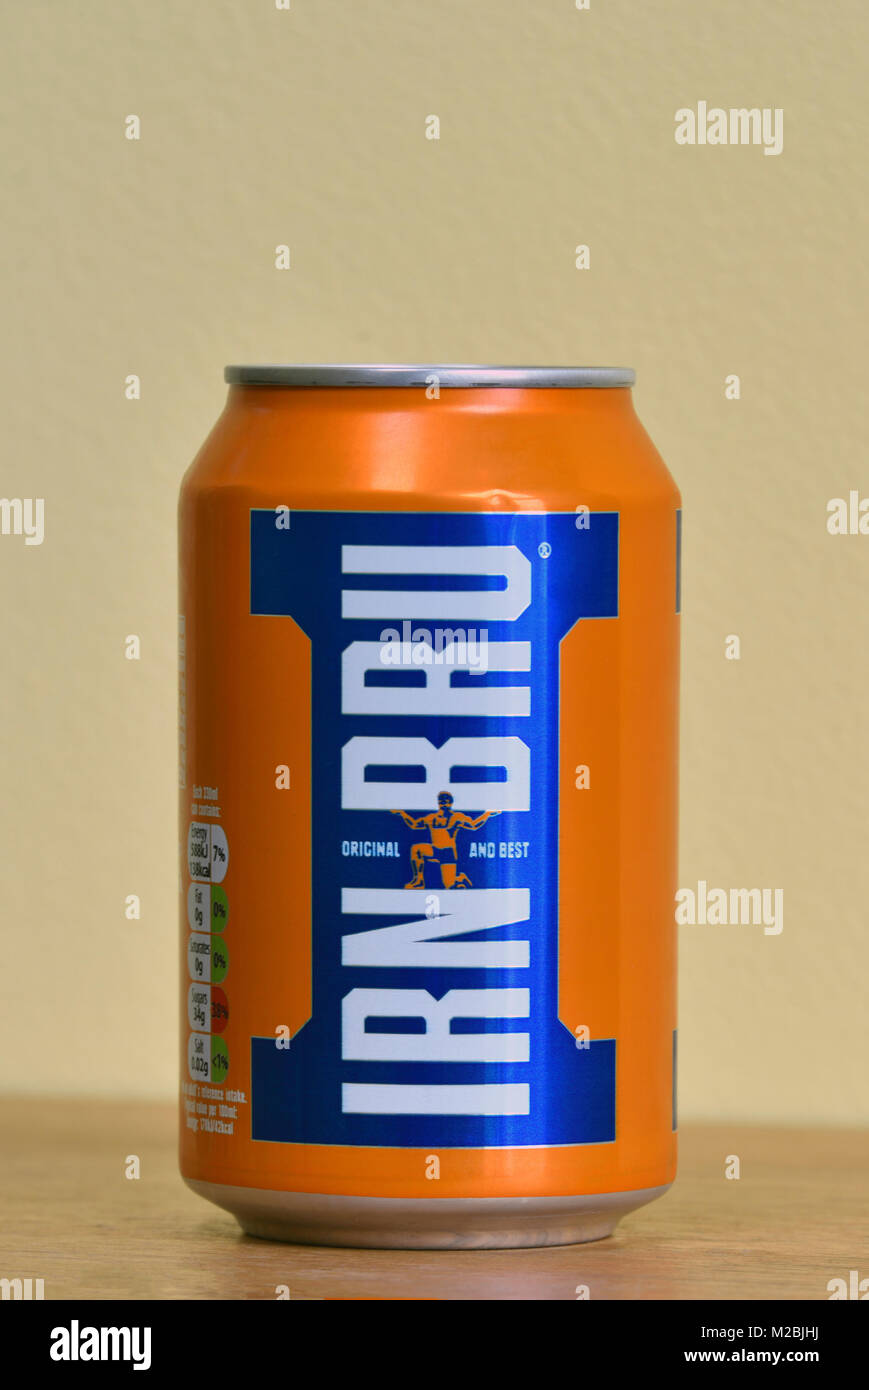 Can of Irn-Bru. Original and best. Scottish carbonated soft drink. Stock Photo